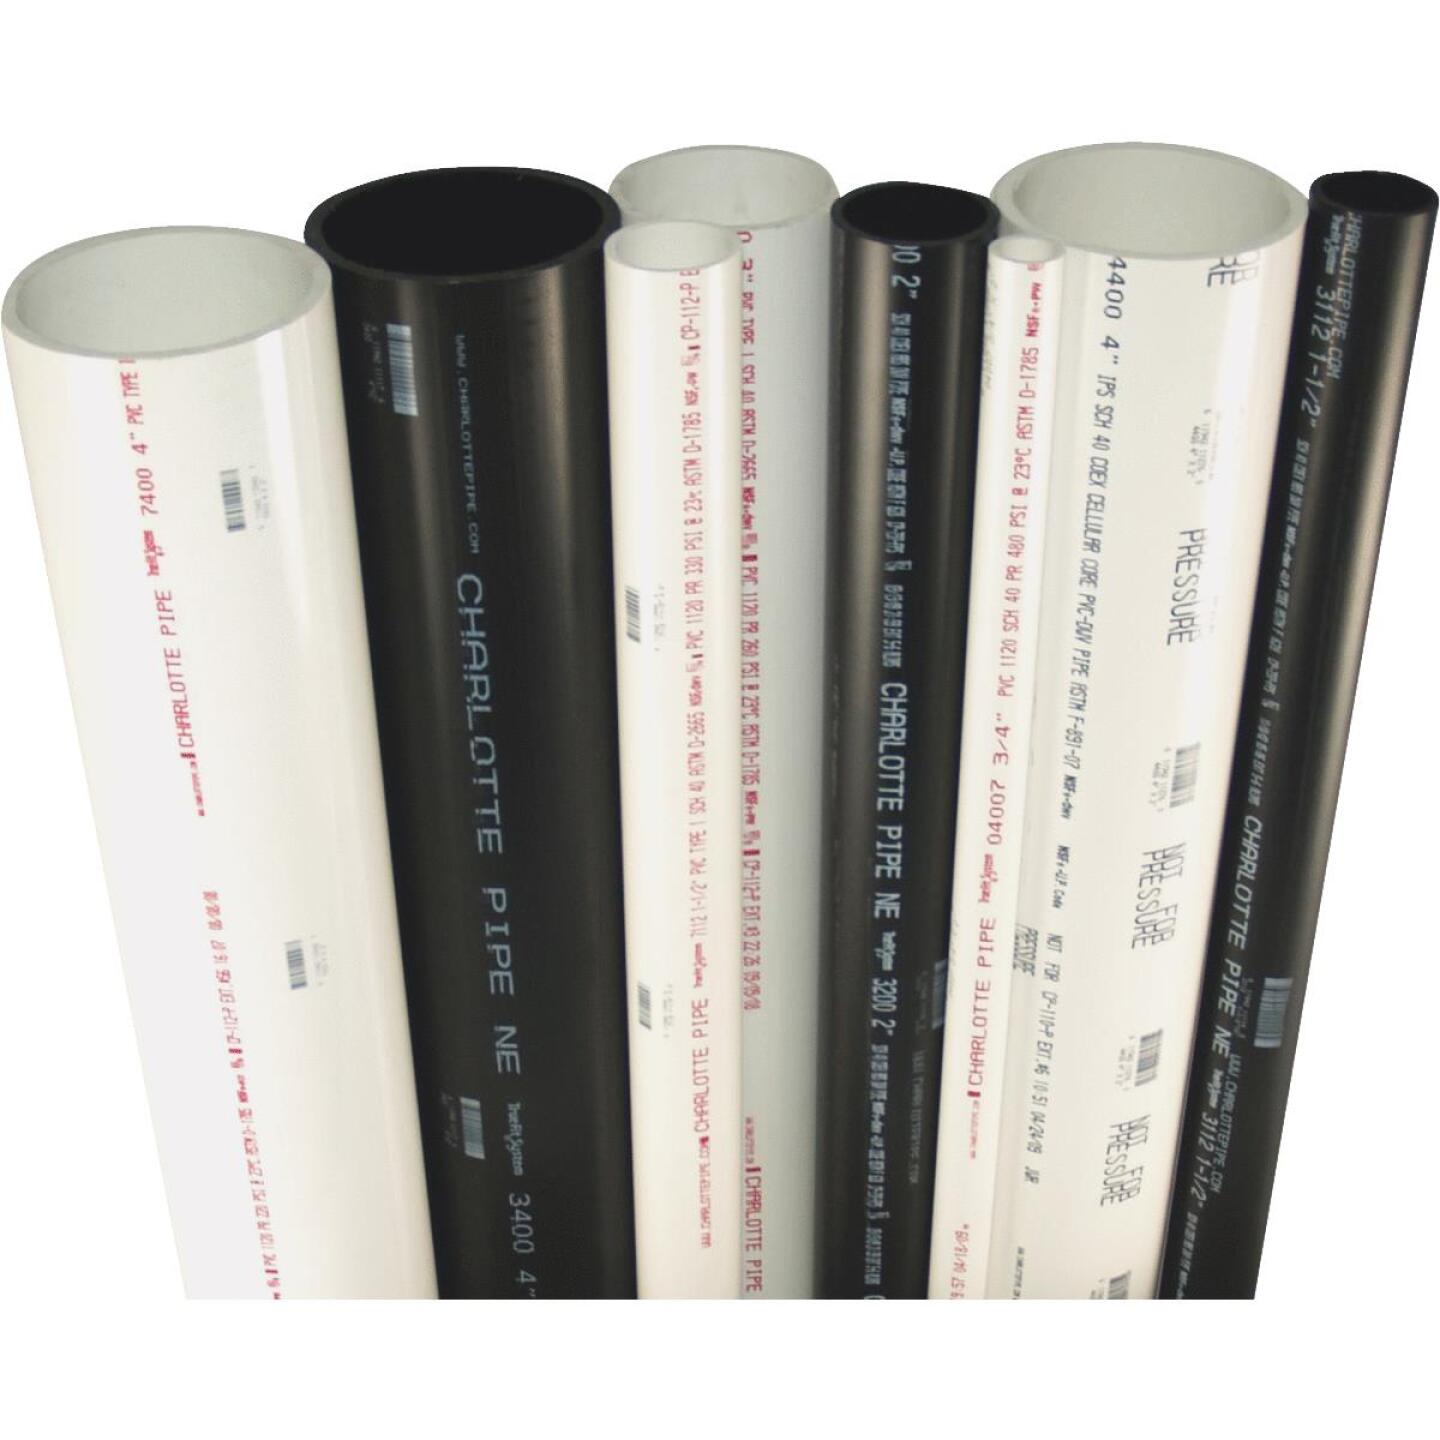 Charlotte Pipe 1-1/4 In. x 10 Ft. Cold Water Schedule 40 PVC Pressure Pipe Image 2